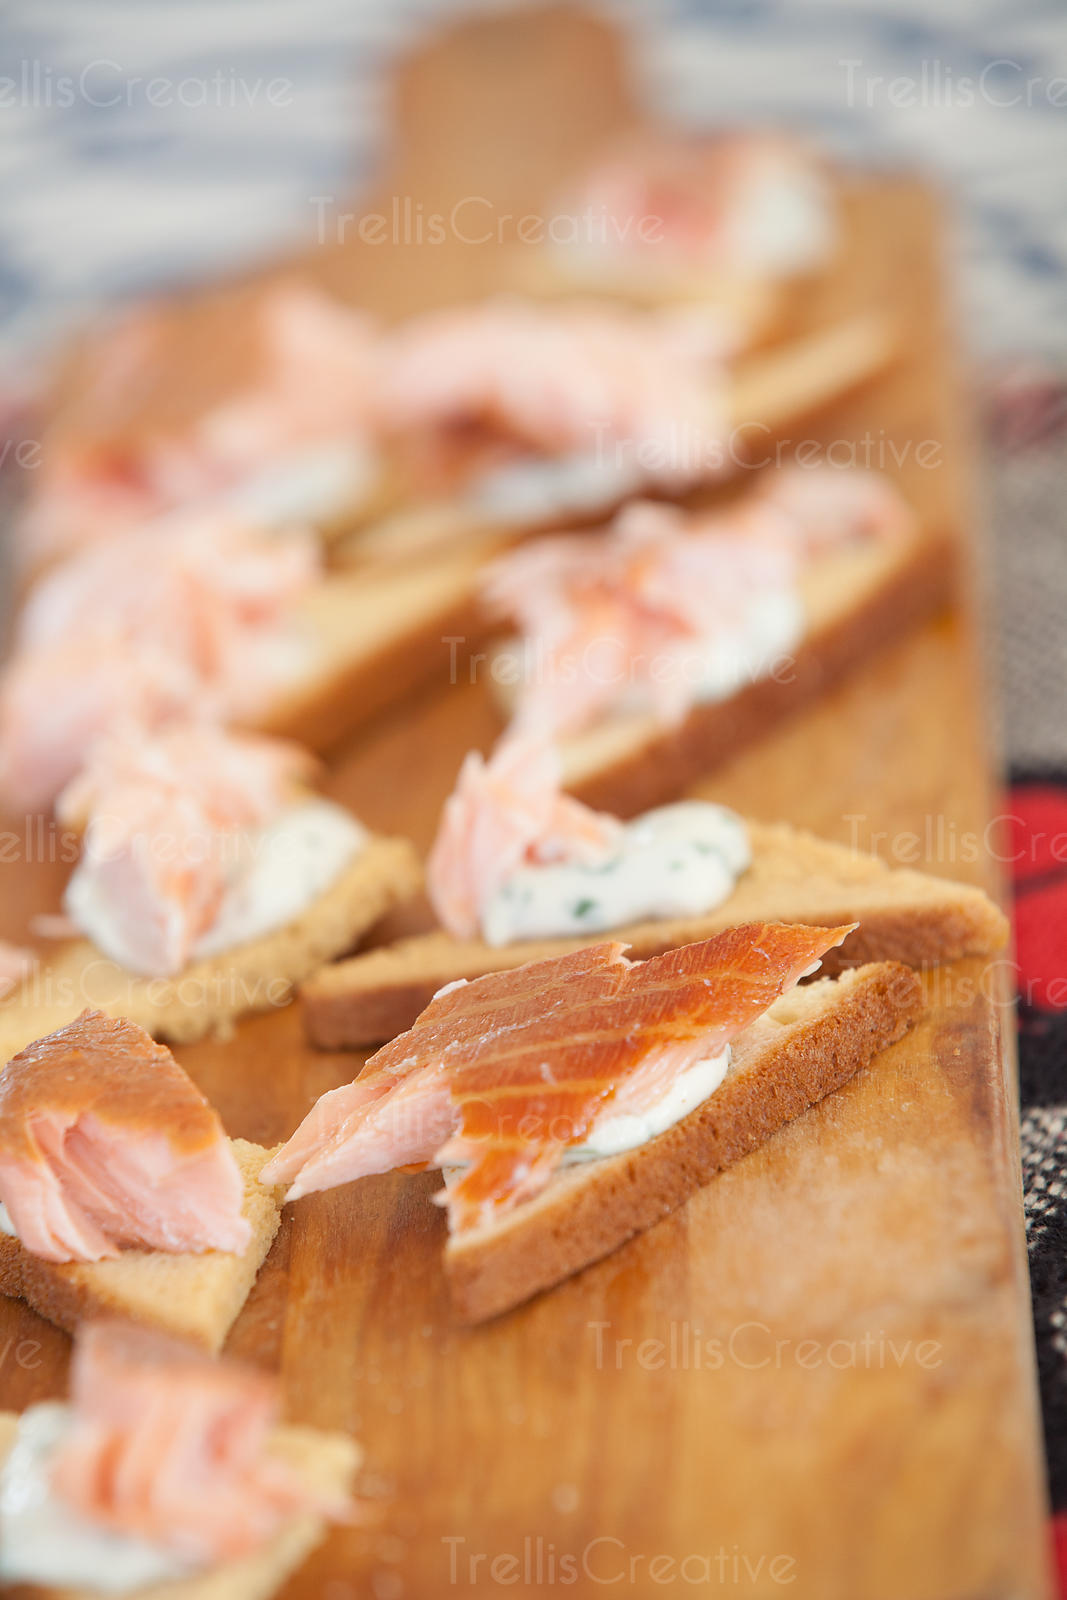 Delicious pieces of smoked salmon on crostini appetizers